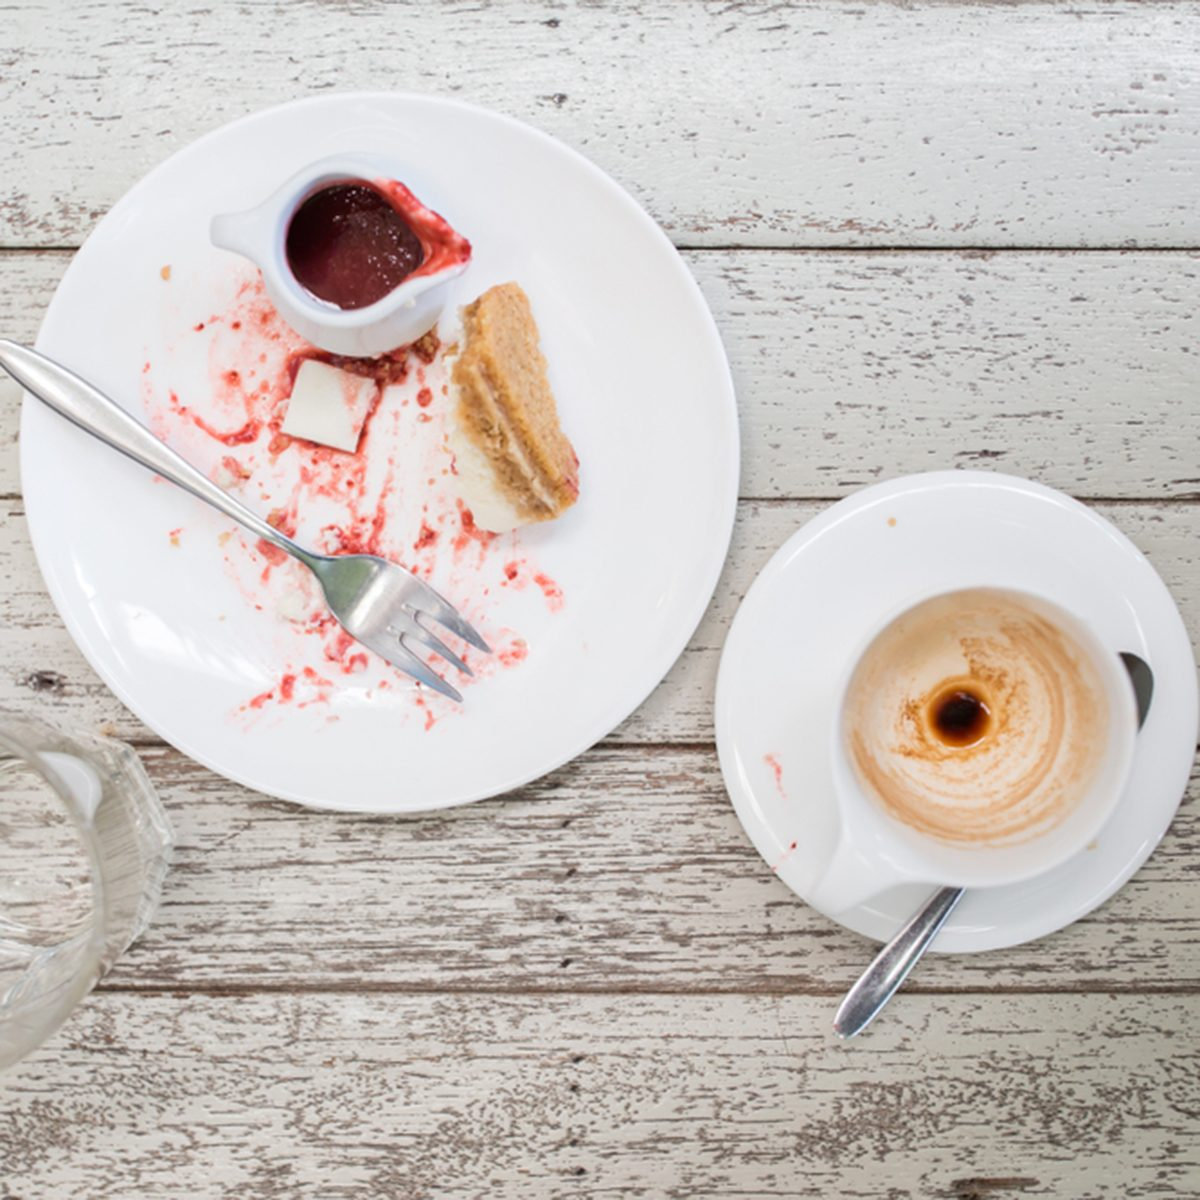 cheesecake and coffee. Can not finish the plate